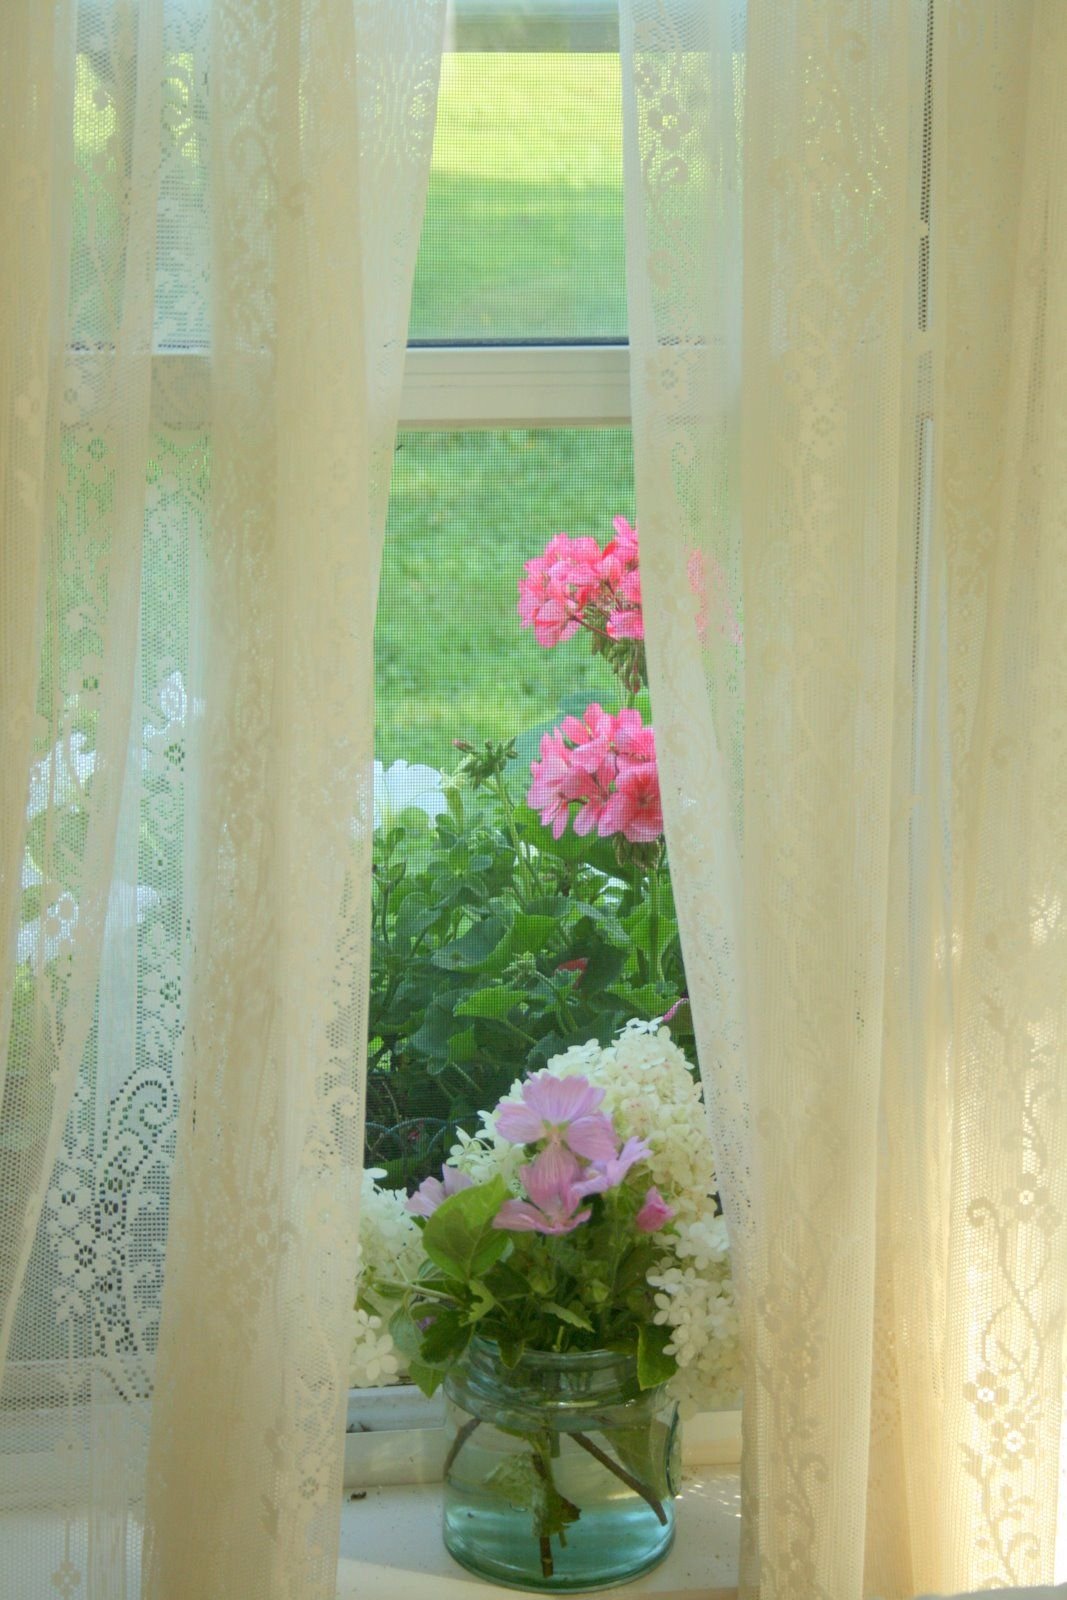 Screen windows, lace curtains, and flowers